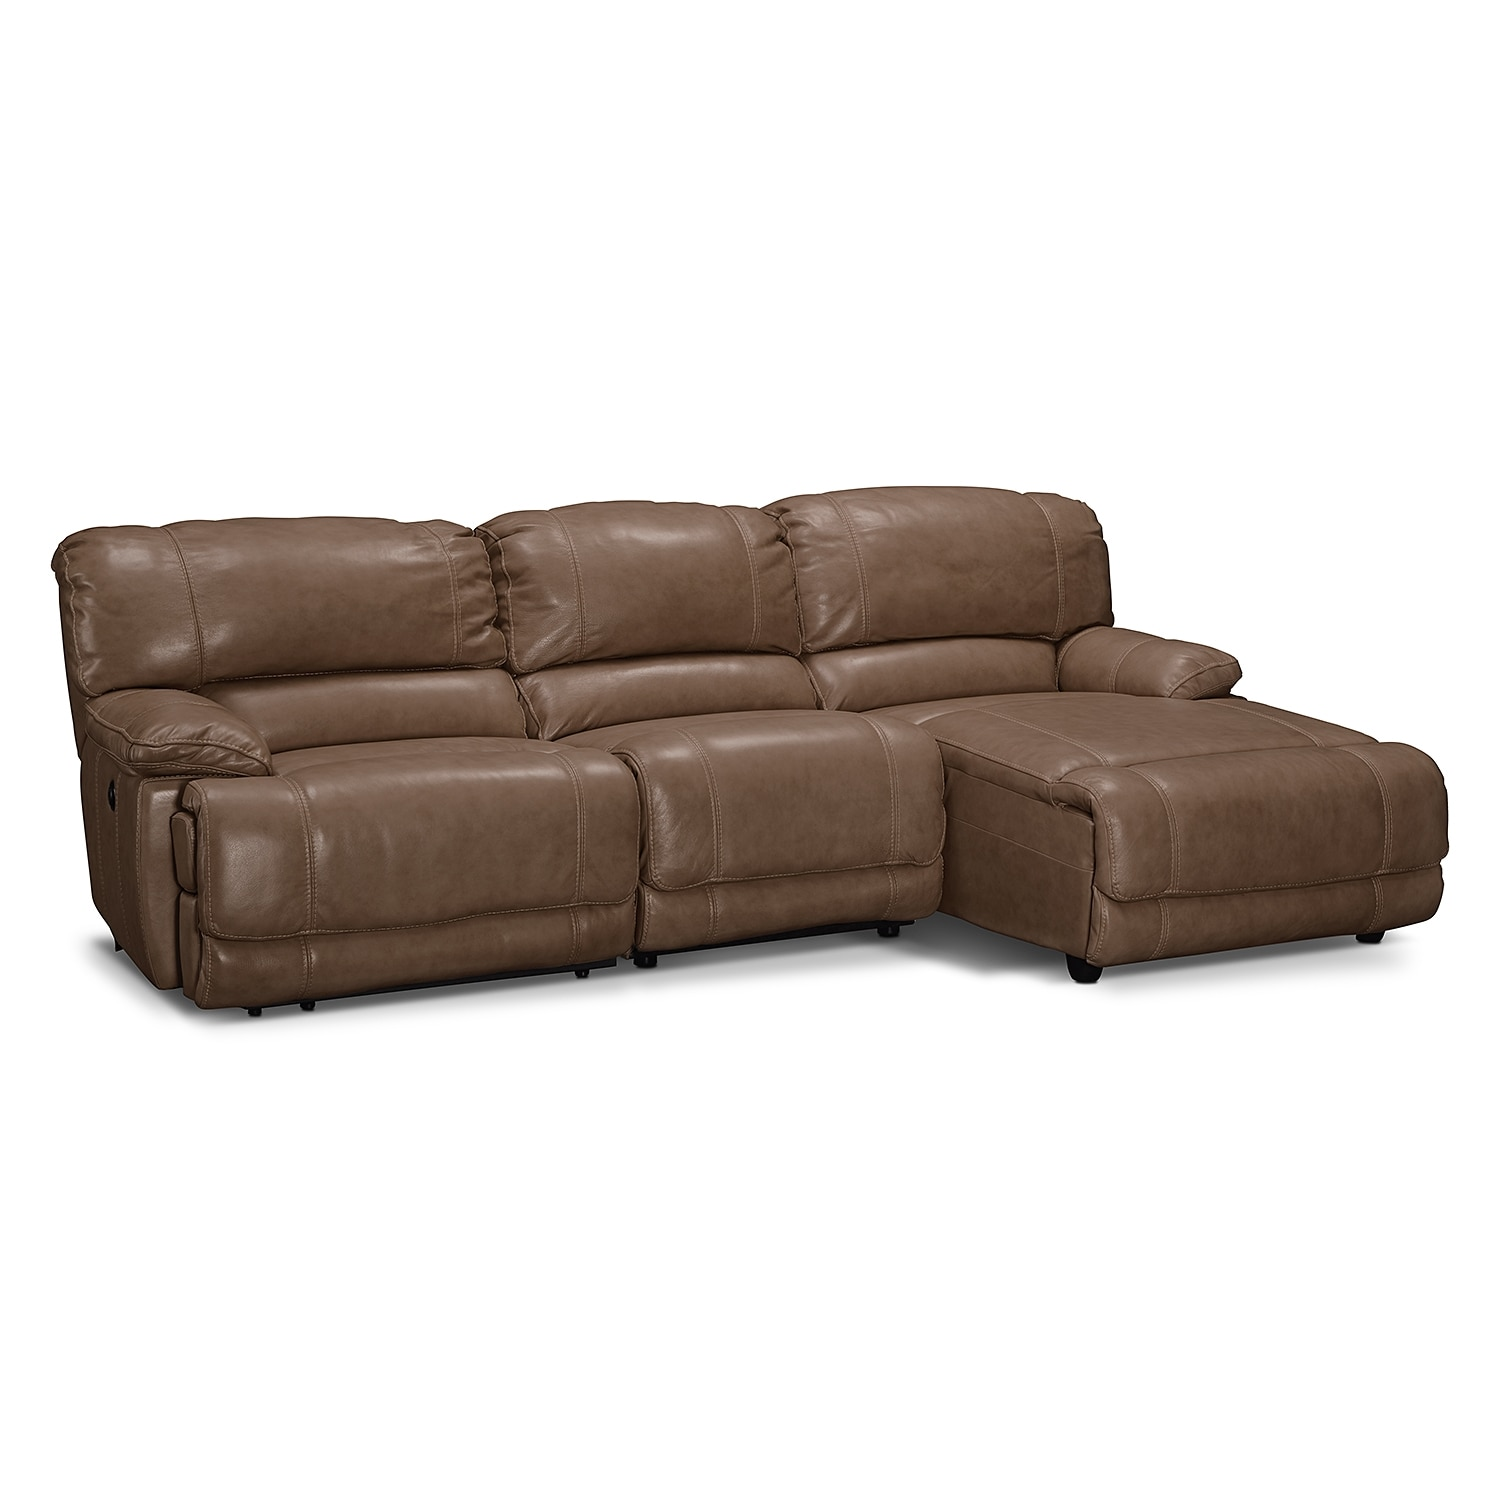 Living Room Furniture - St. Malo 3-Piece Right-Facing Power Reclining Sectional - Taupe